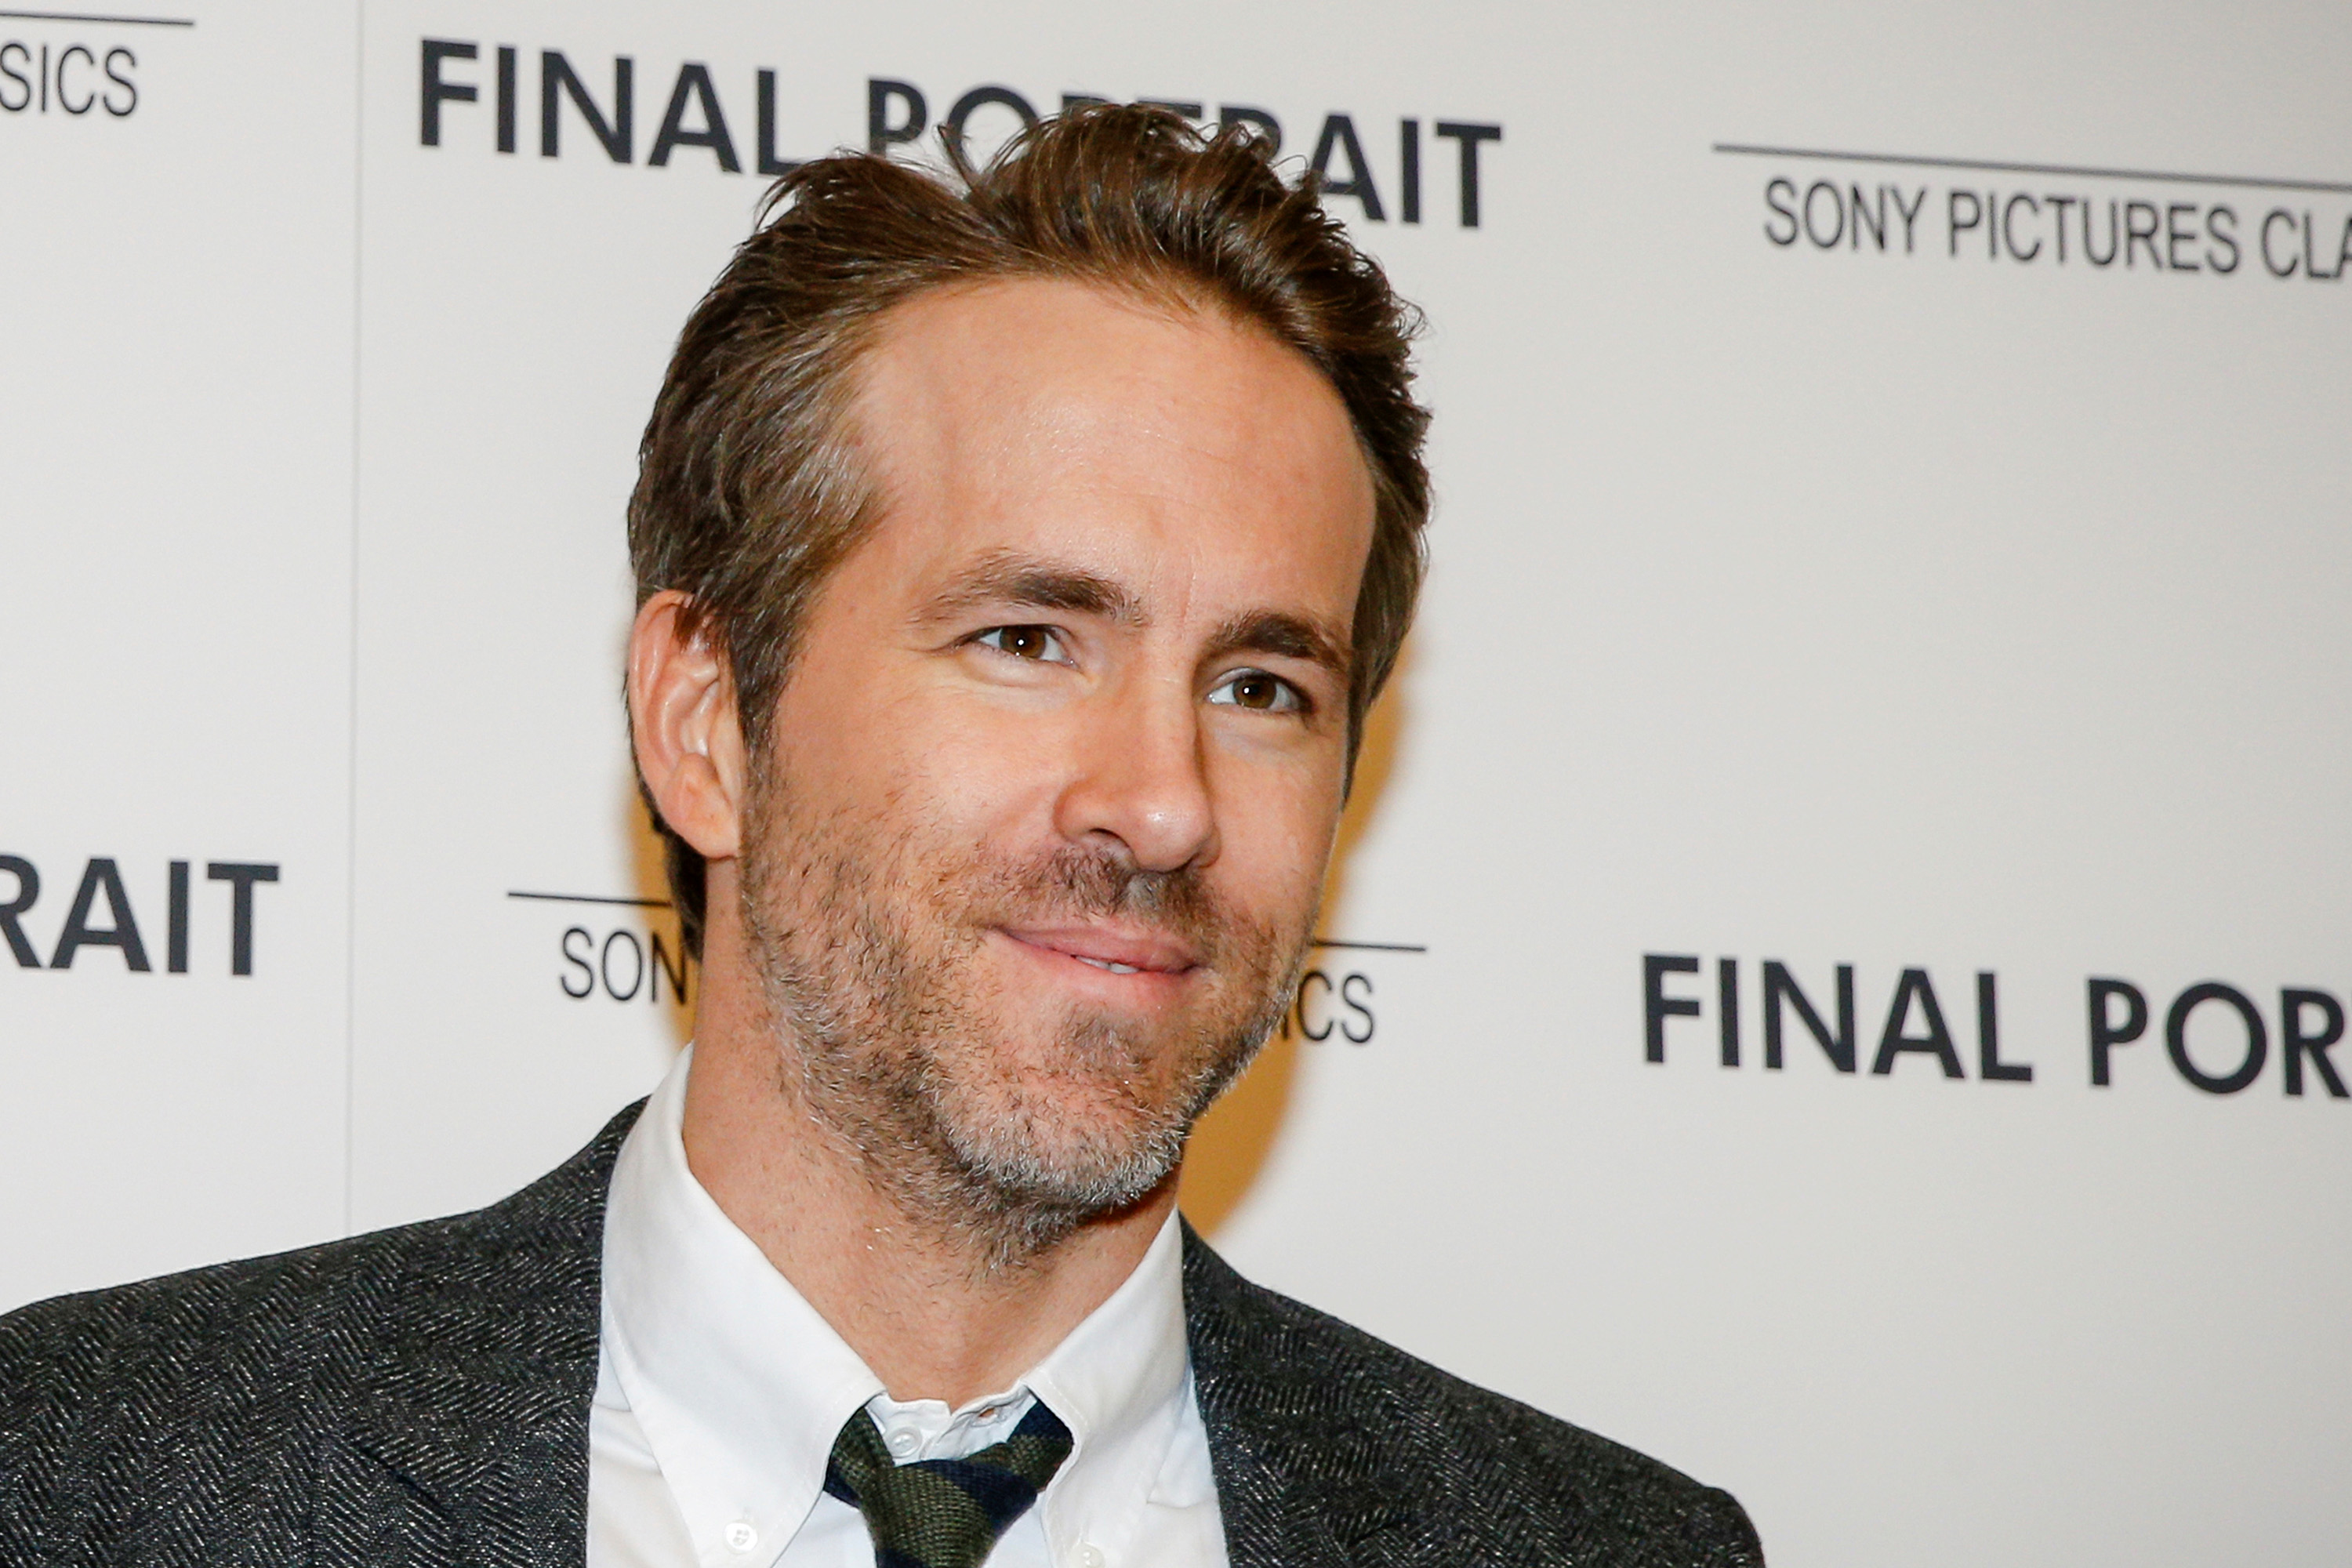 Ryan Reynolds, Rob Mcelhenney buy Welsh soccer club Wrexham